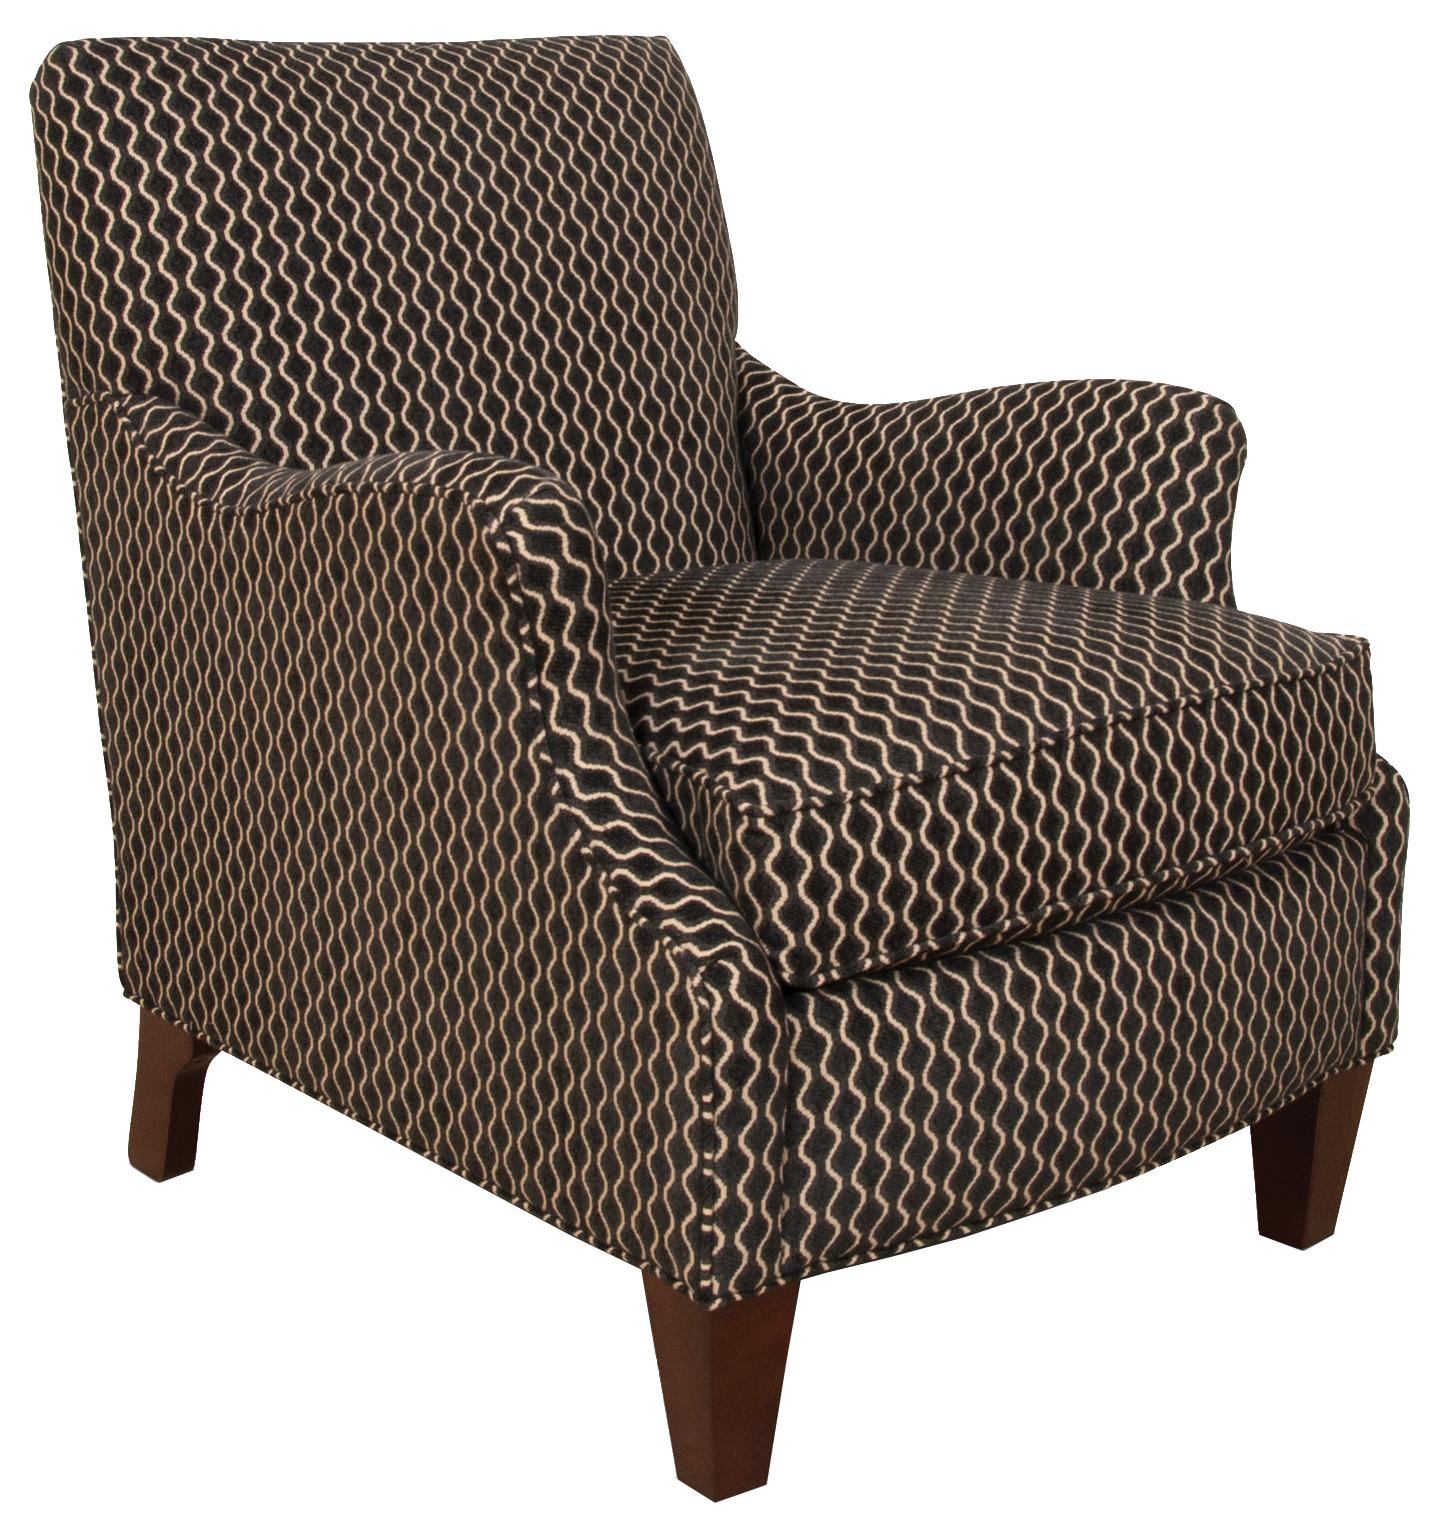 England Gillian Decorative Accent Chair With Charming